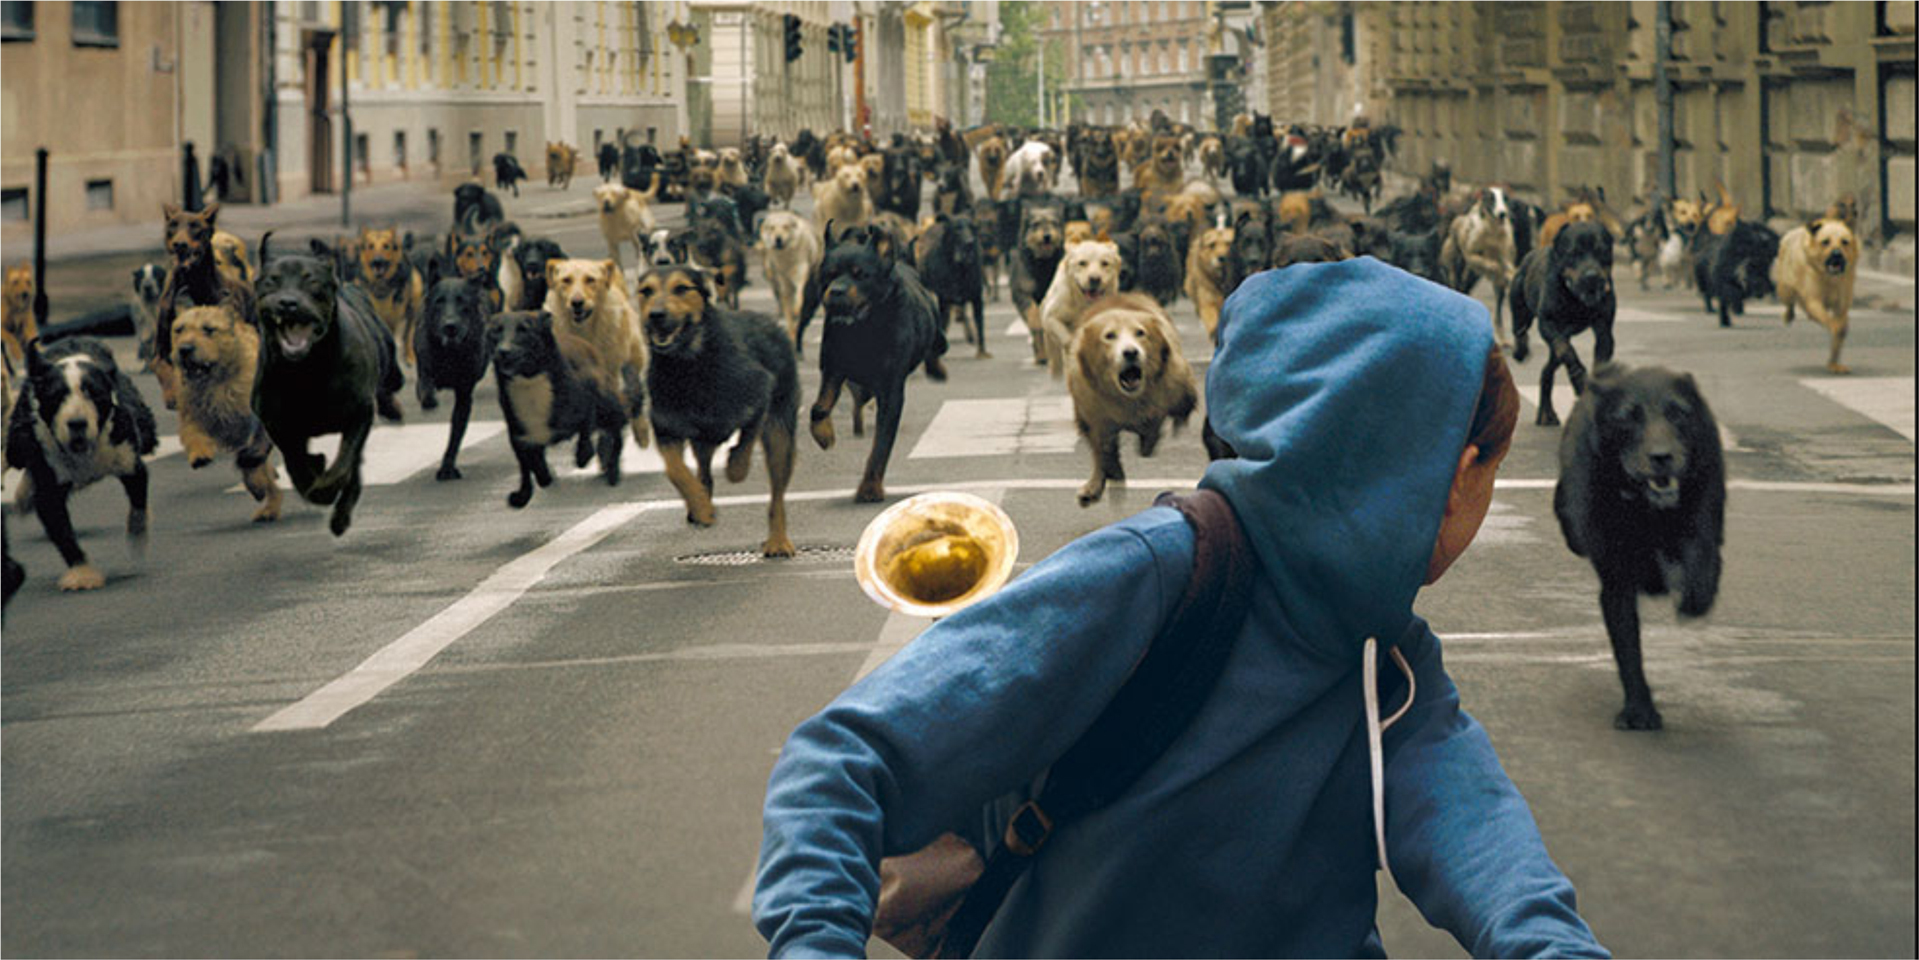 Trailer de 'White God', los perros dominan la Tierra